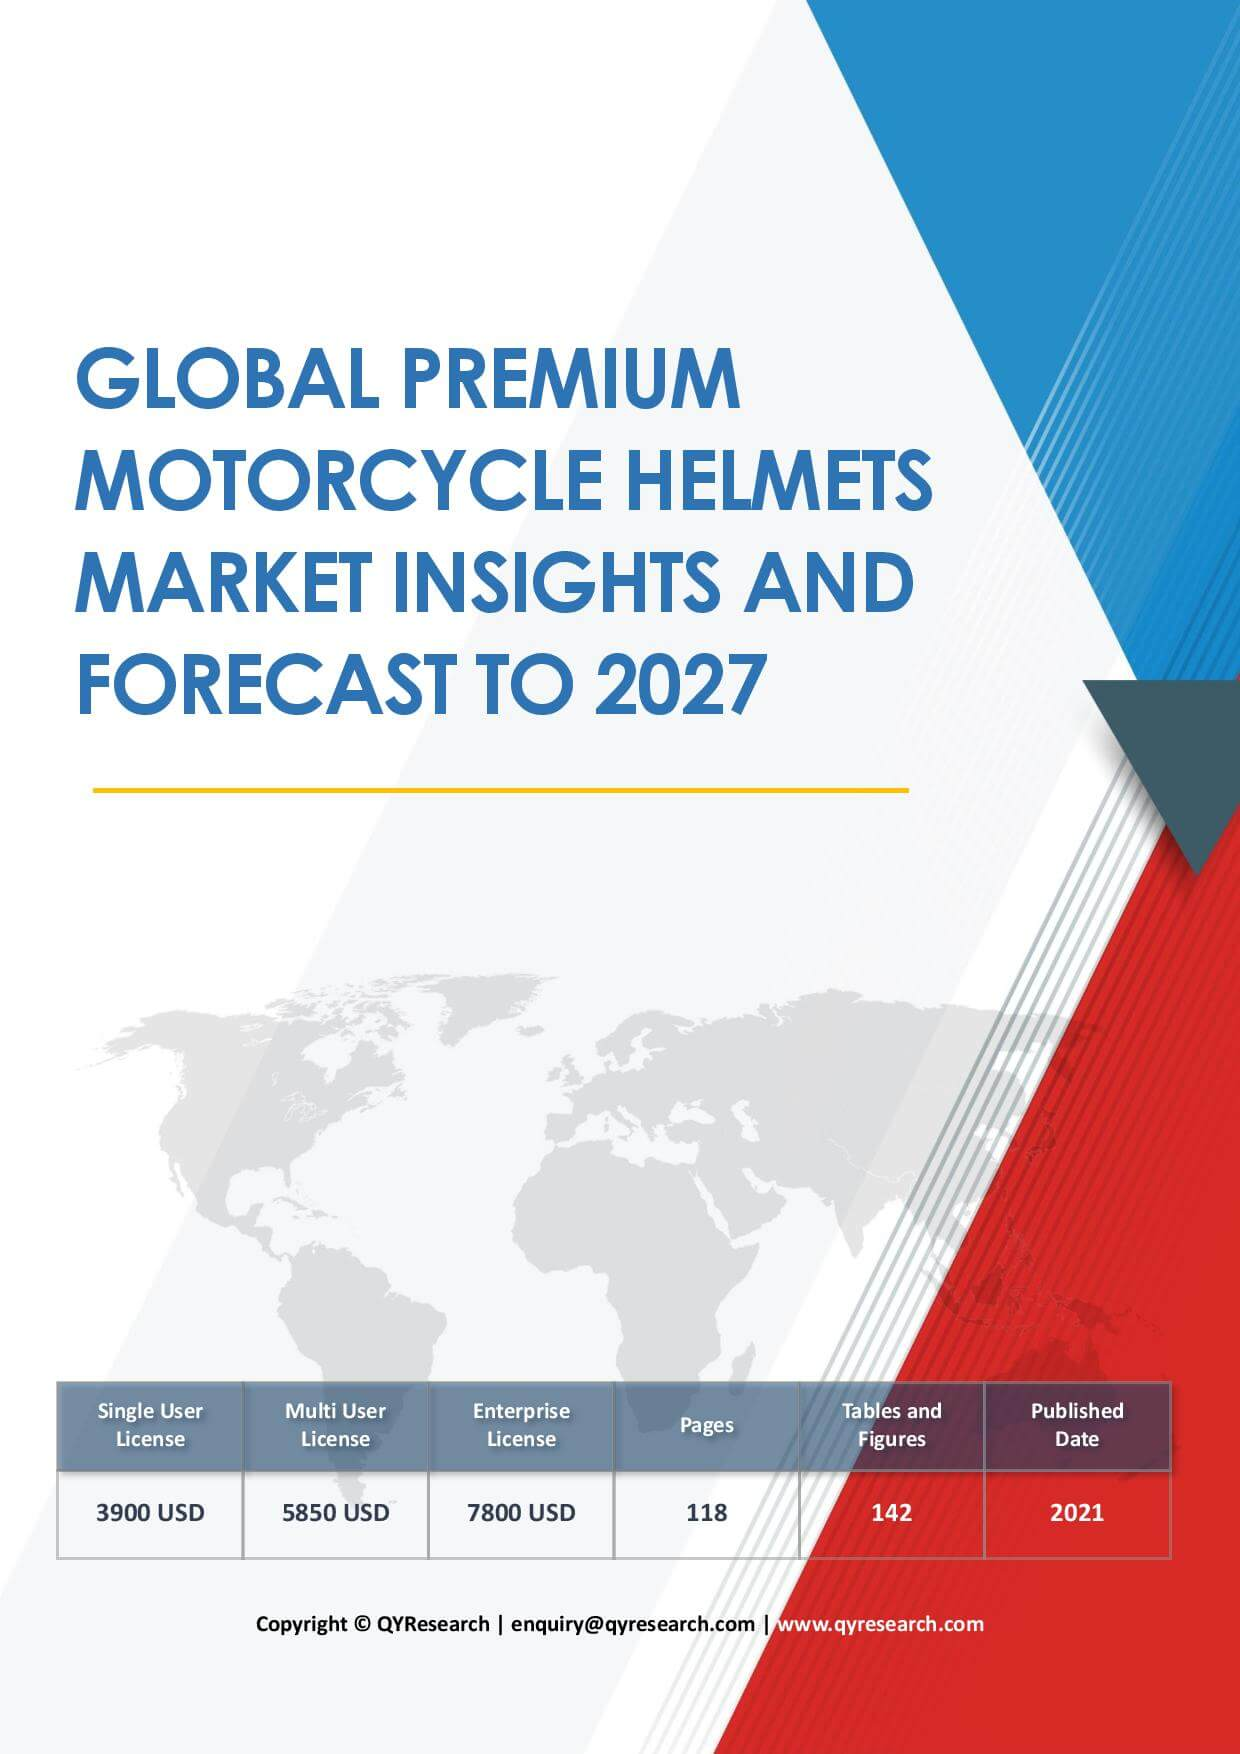 Global Premium Motorcycle Helmets Market Insights and Forecast to 2027